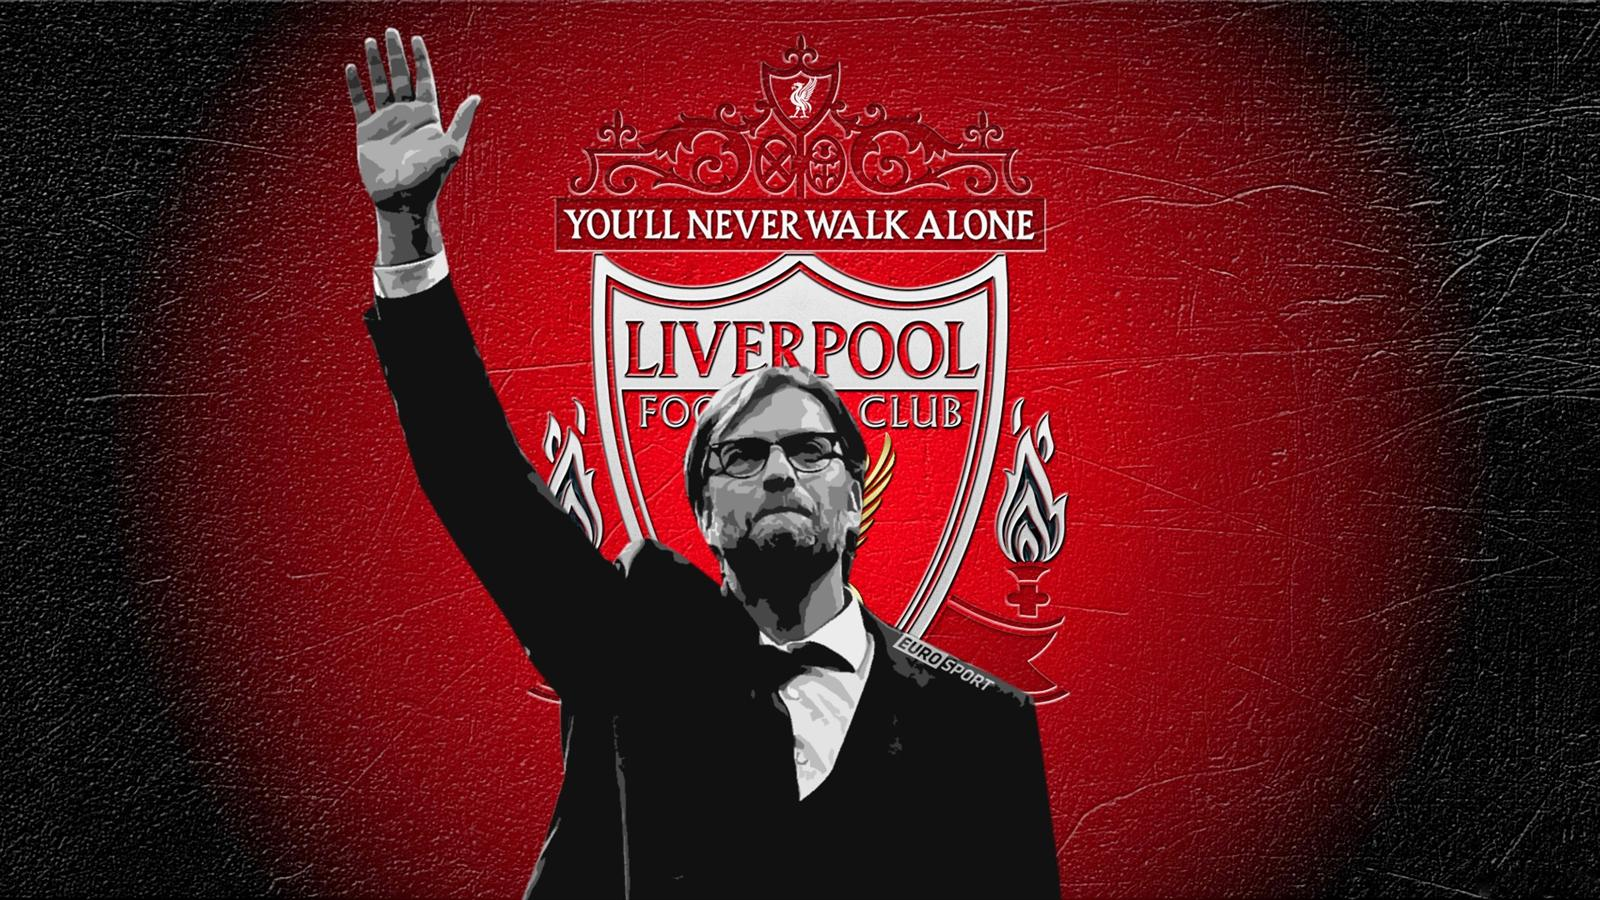 Jurgen Klopp Gives Liverpool The Charisma They've Been